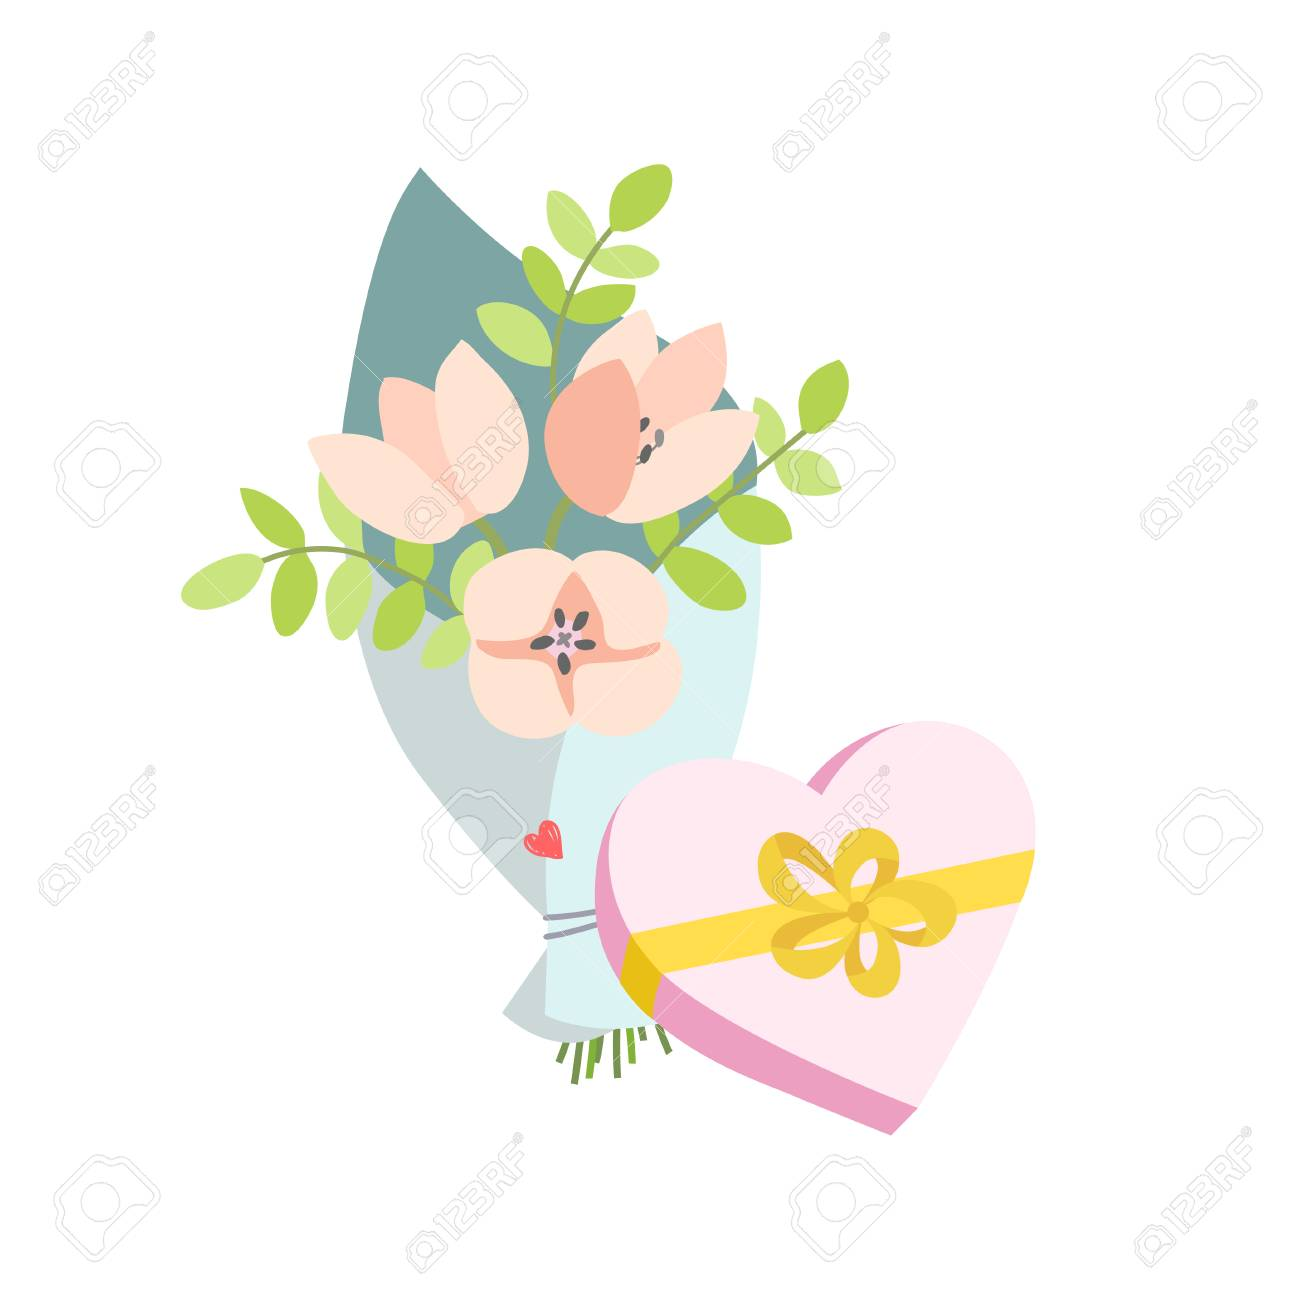 Spring Bouquet Of Flowers And A Gift In The Form Of A Heart ...